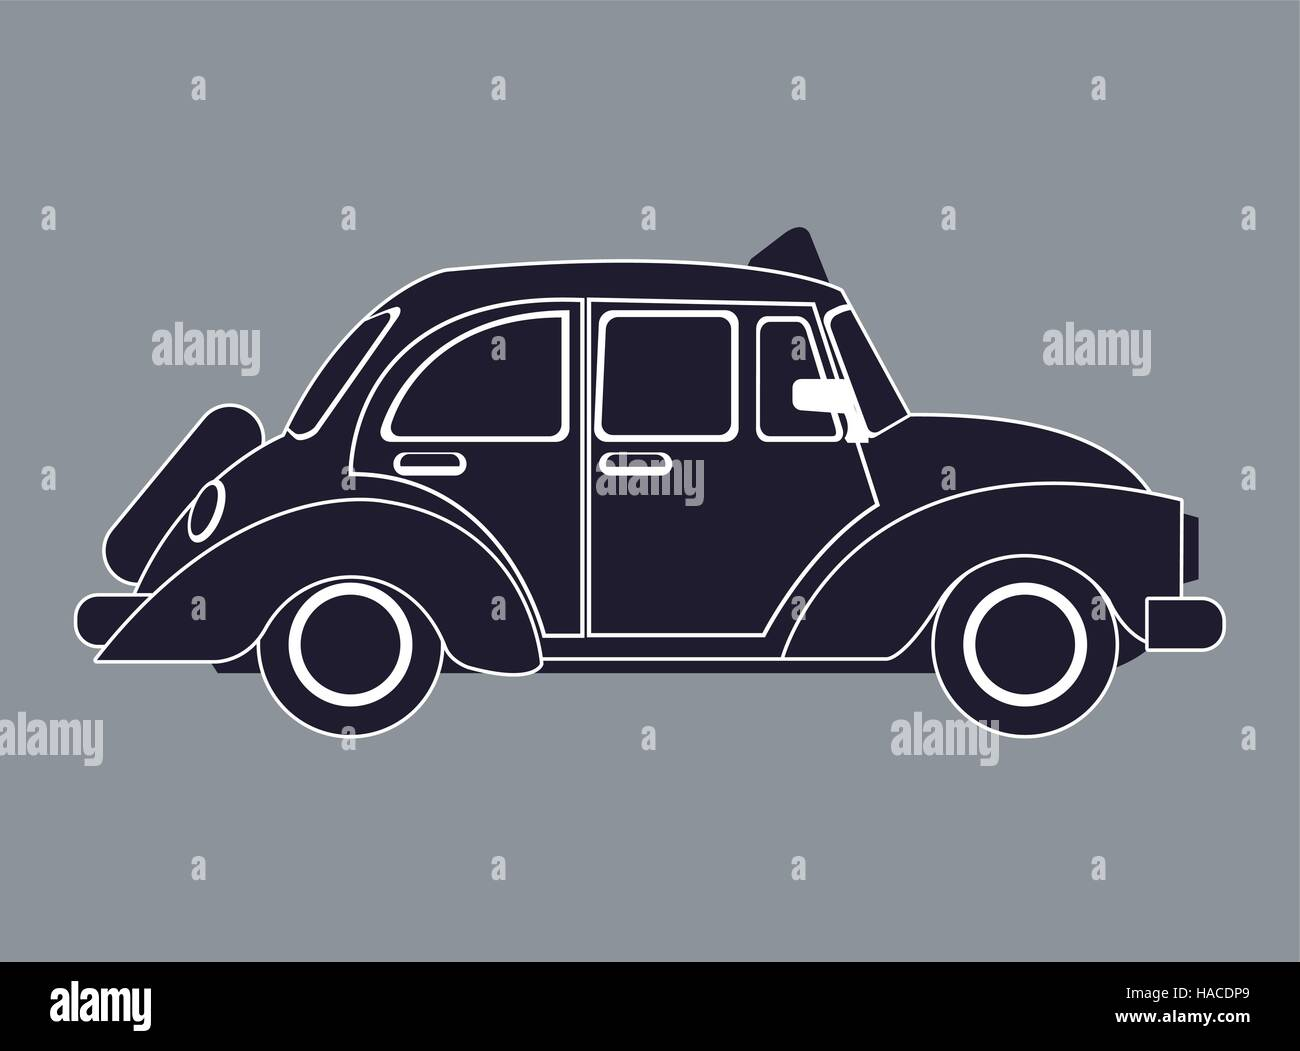 Silhouette Old Taxi Car Side View Stock Vector Art Illustration